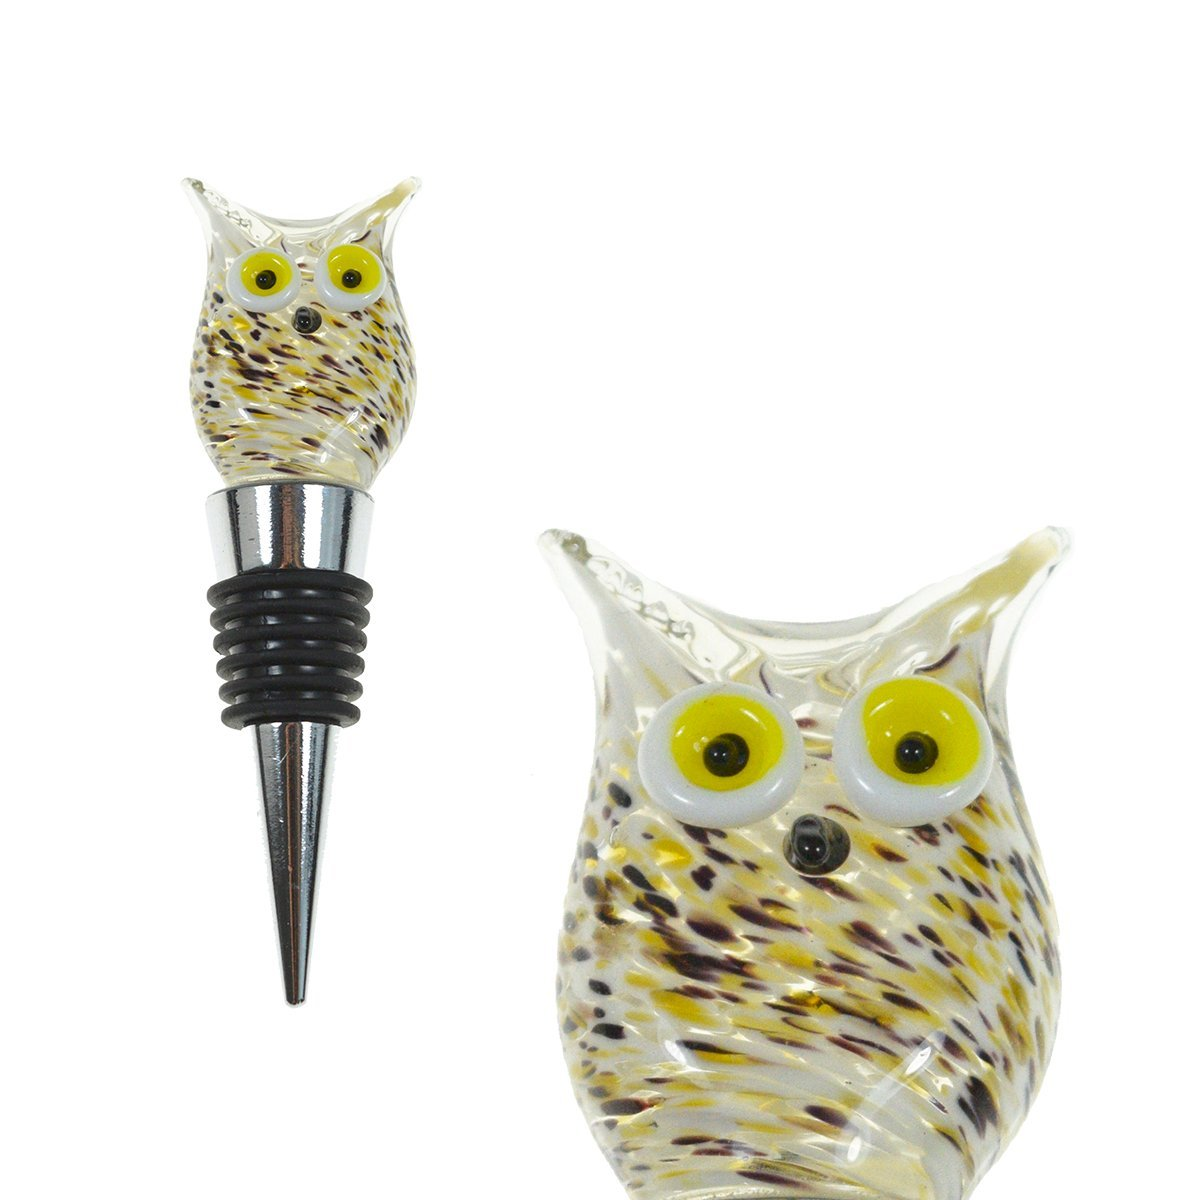 Colorful Wine Accessories Gift for Host//Hostess Handmade Decorative Wine Corker//Sealer PrestigeHaus Glass Owl Wine Bottle Stopper Unique Eye-Catching Glass Wine Stoppers